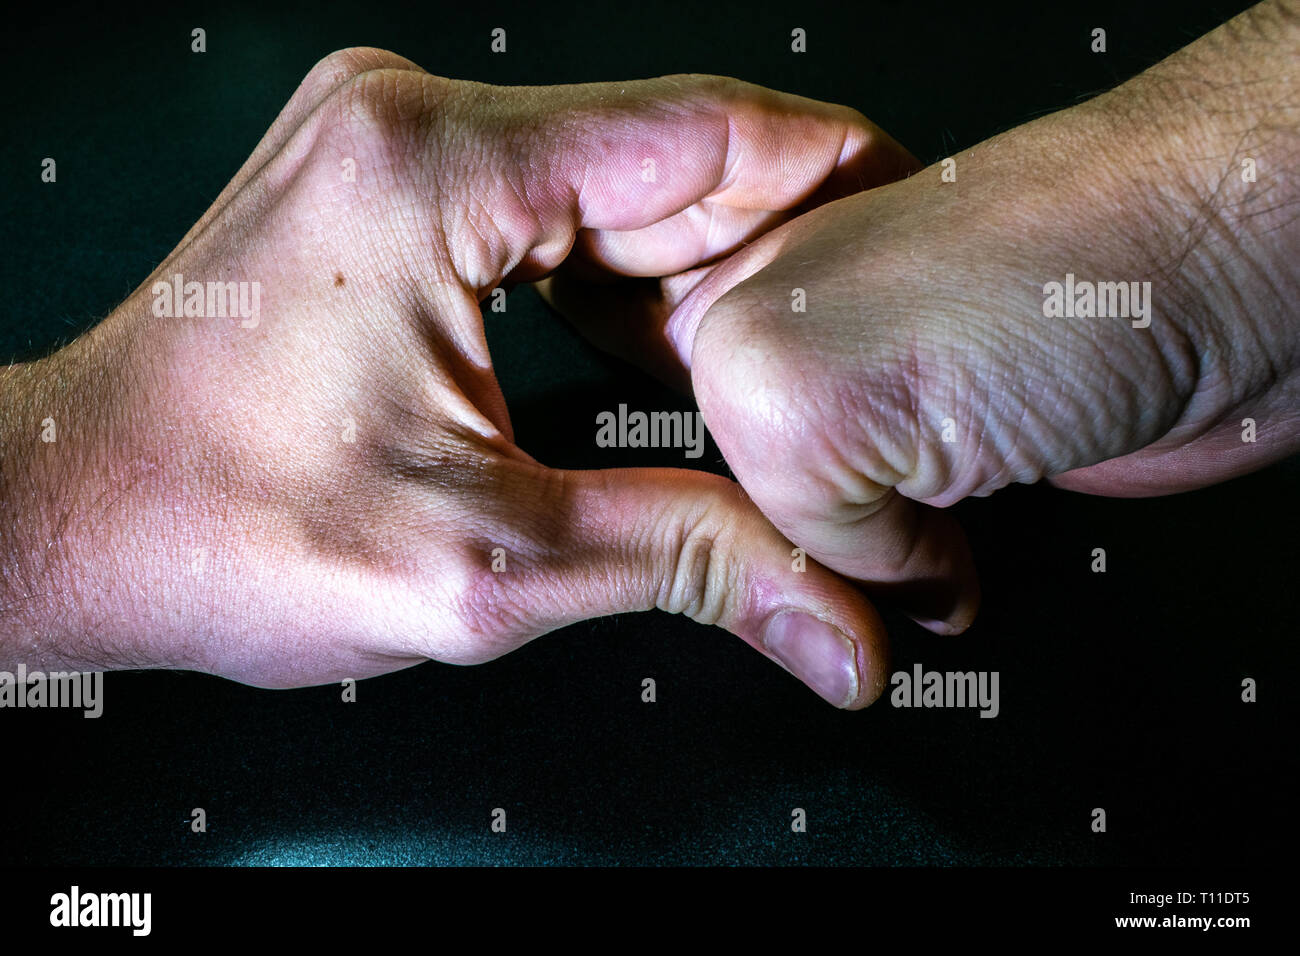 Cracking Knuckles - Stock Image